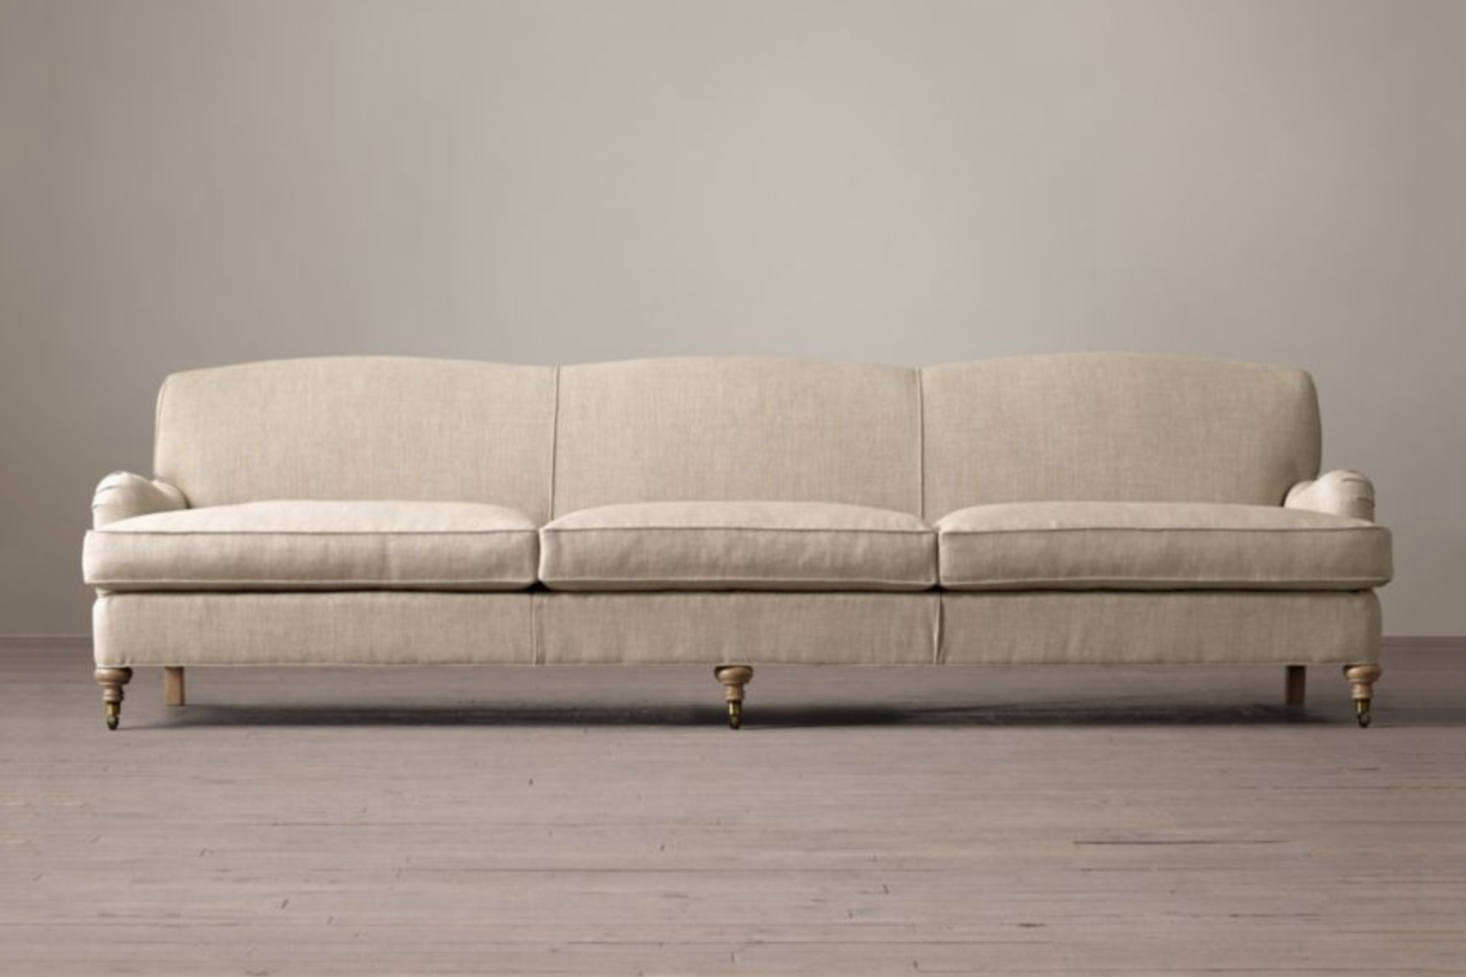 Super 10 Easy Pieces The English Roll Arm Sofa Remodelista Home Interior And Landscaping Ologienasavecom